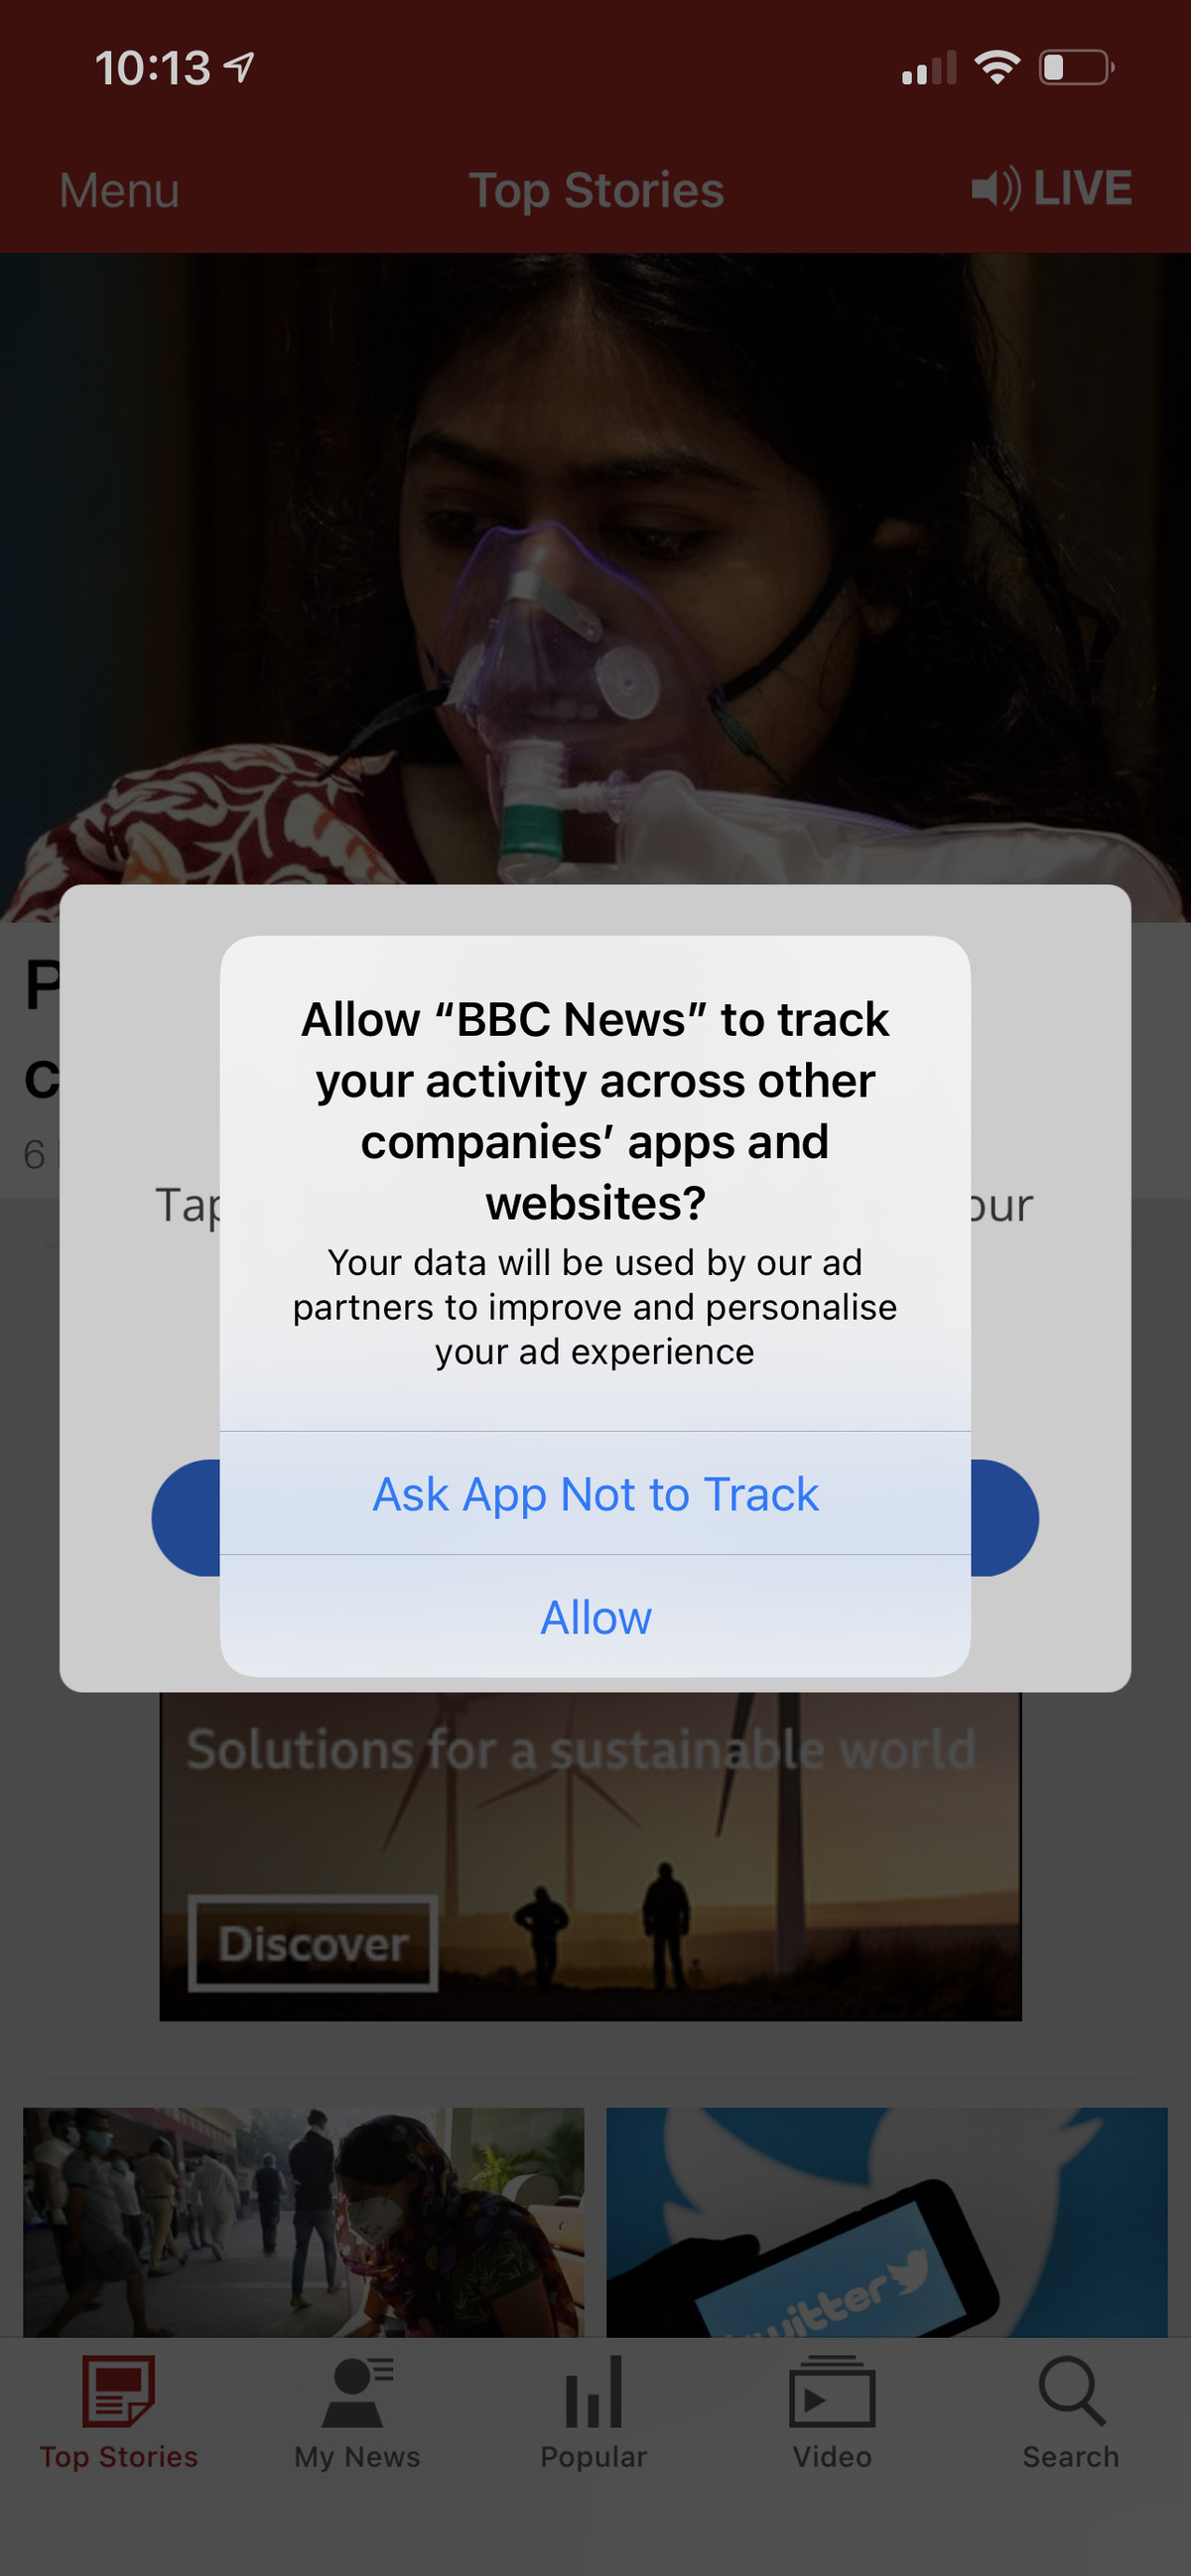 It's up to you now whether to allow each app to track you or not.